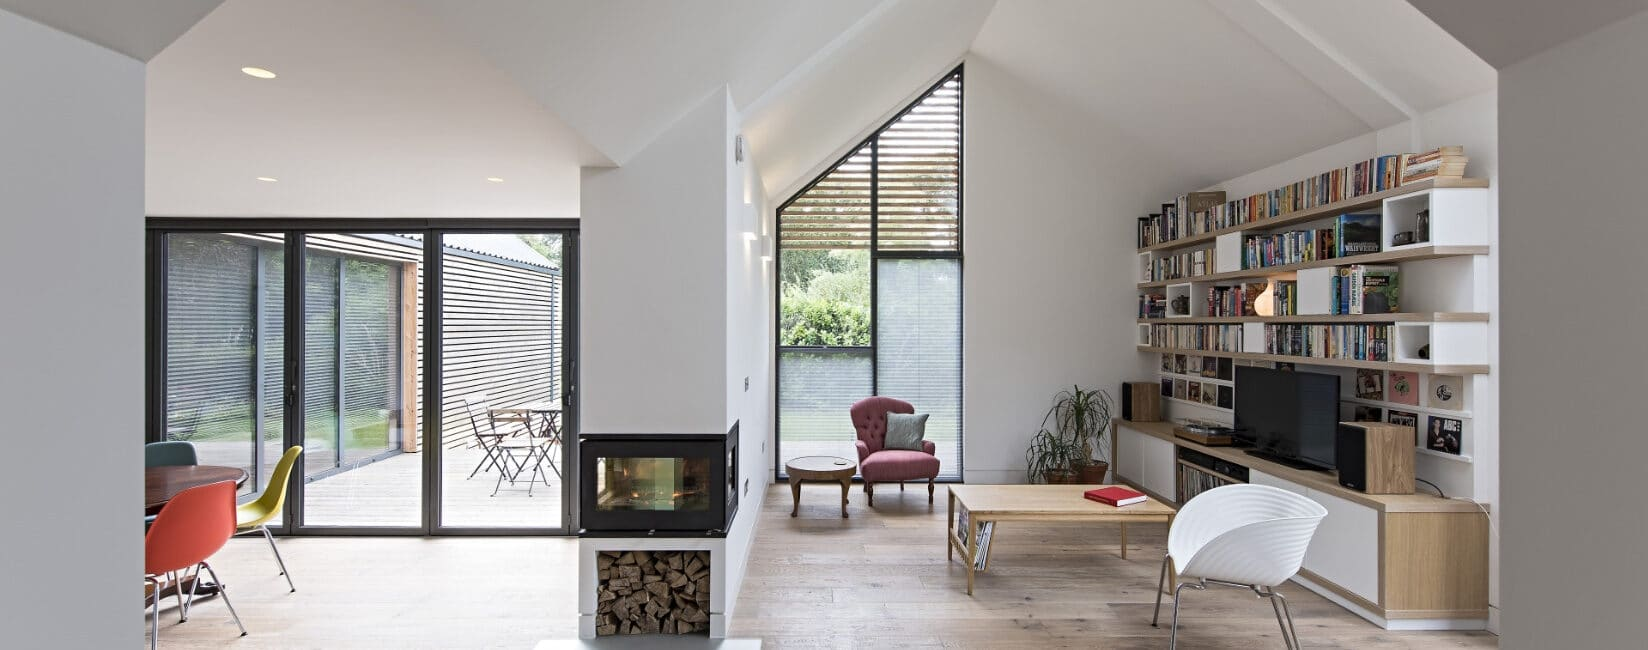 Innovative Flood Resilient Home fitted with SUNFLEX Bifold Doors